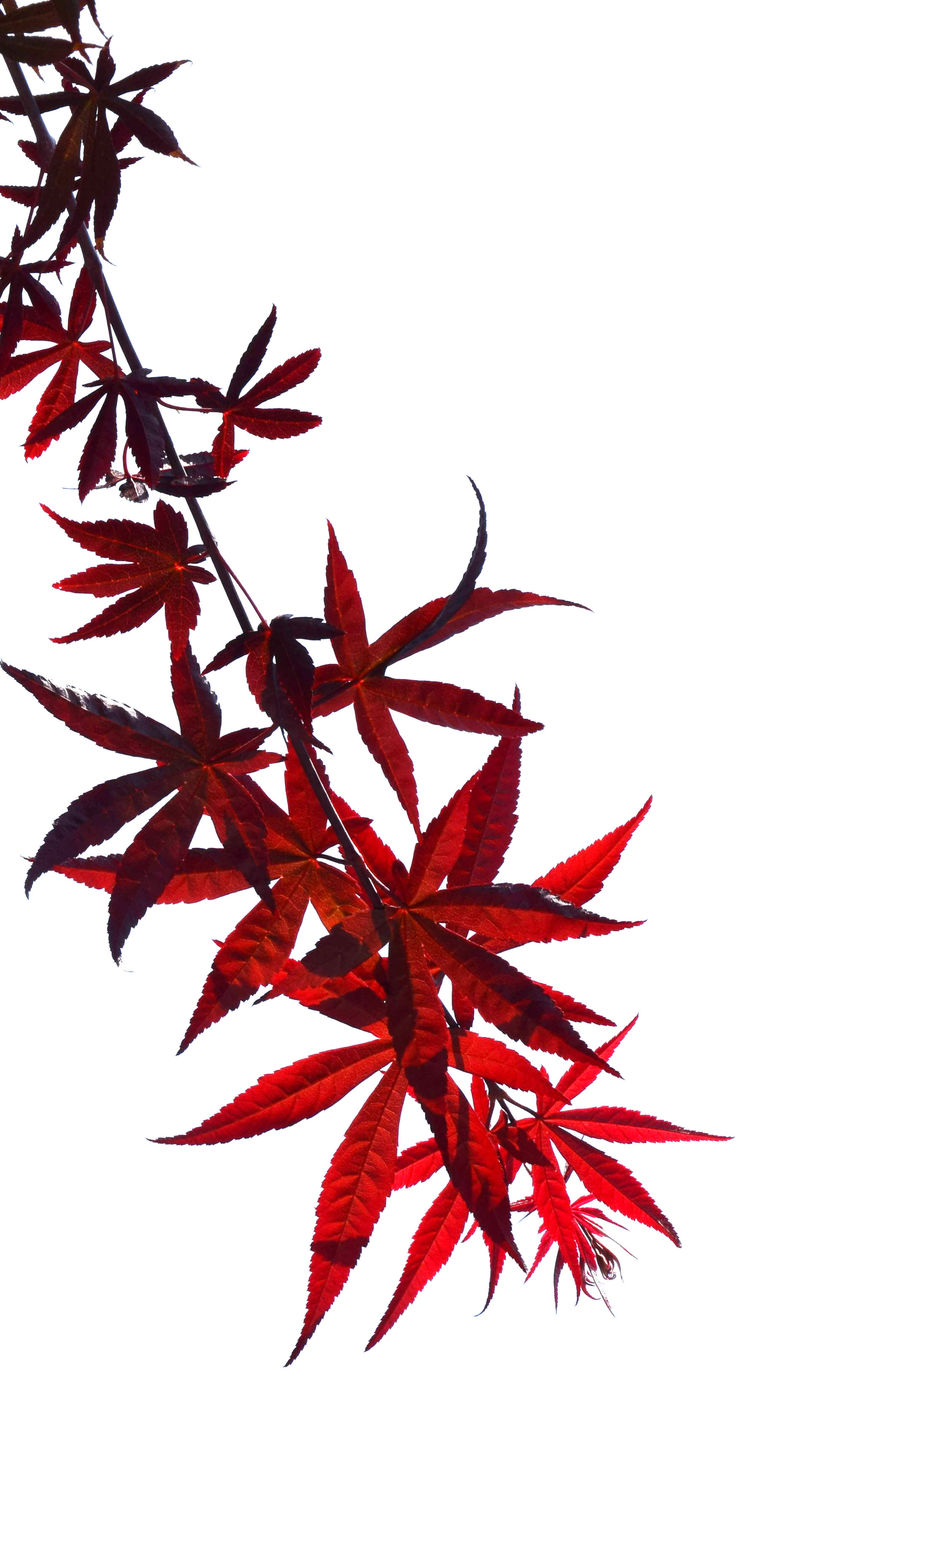 Autumn Beauty In Nature Change Clear Sky Close-up Copy Space Day Leaf Maple Maple Leaf Maple Tree Nature No People Outdoors Red Studio Shot White Background